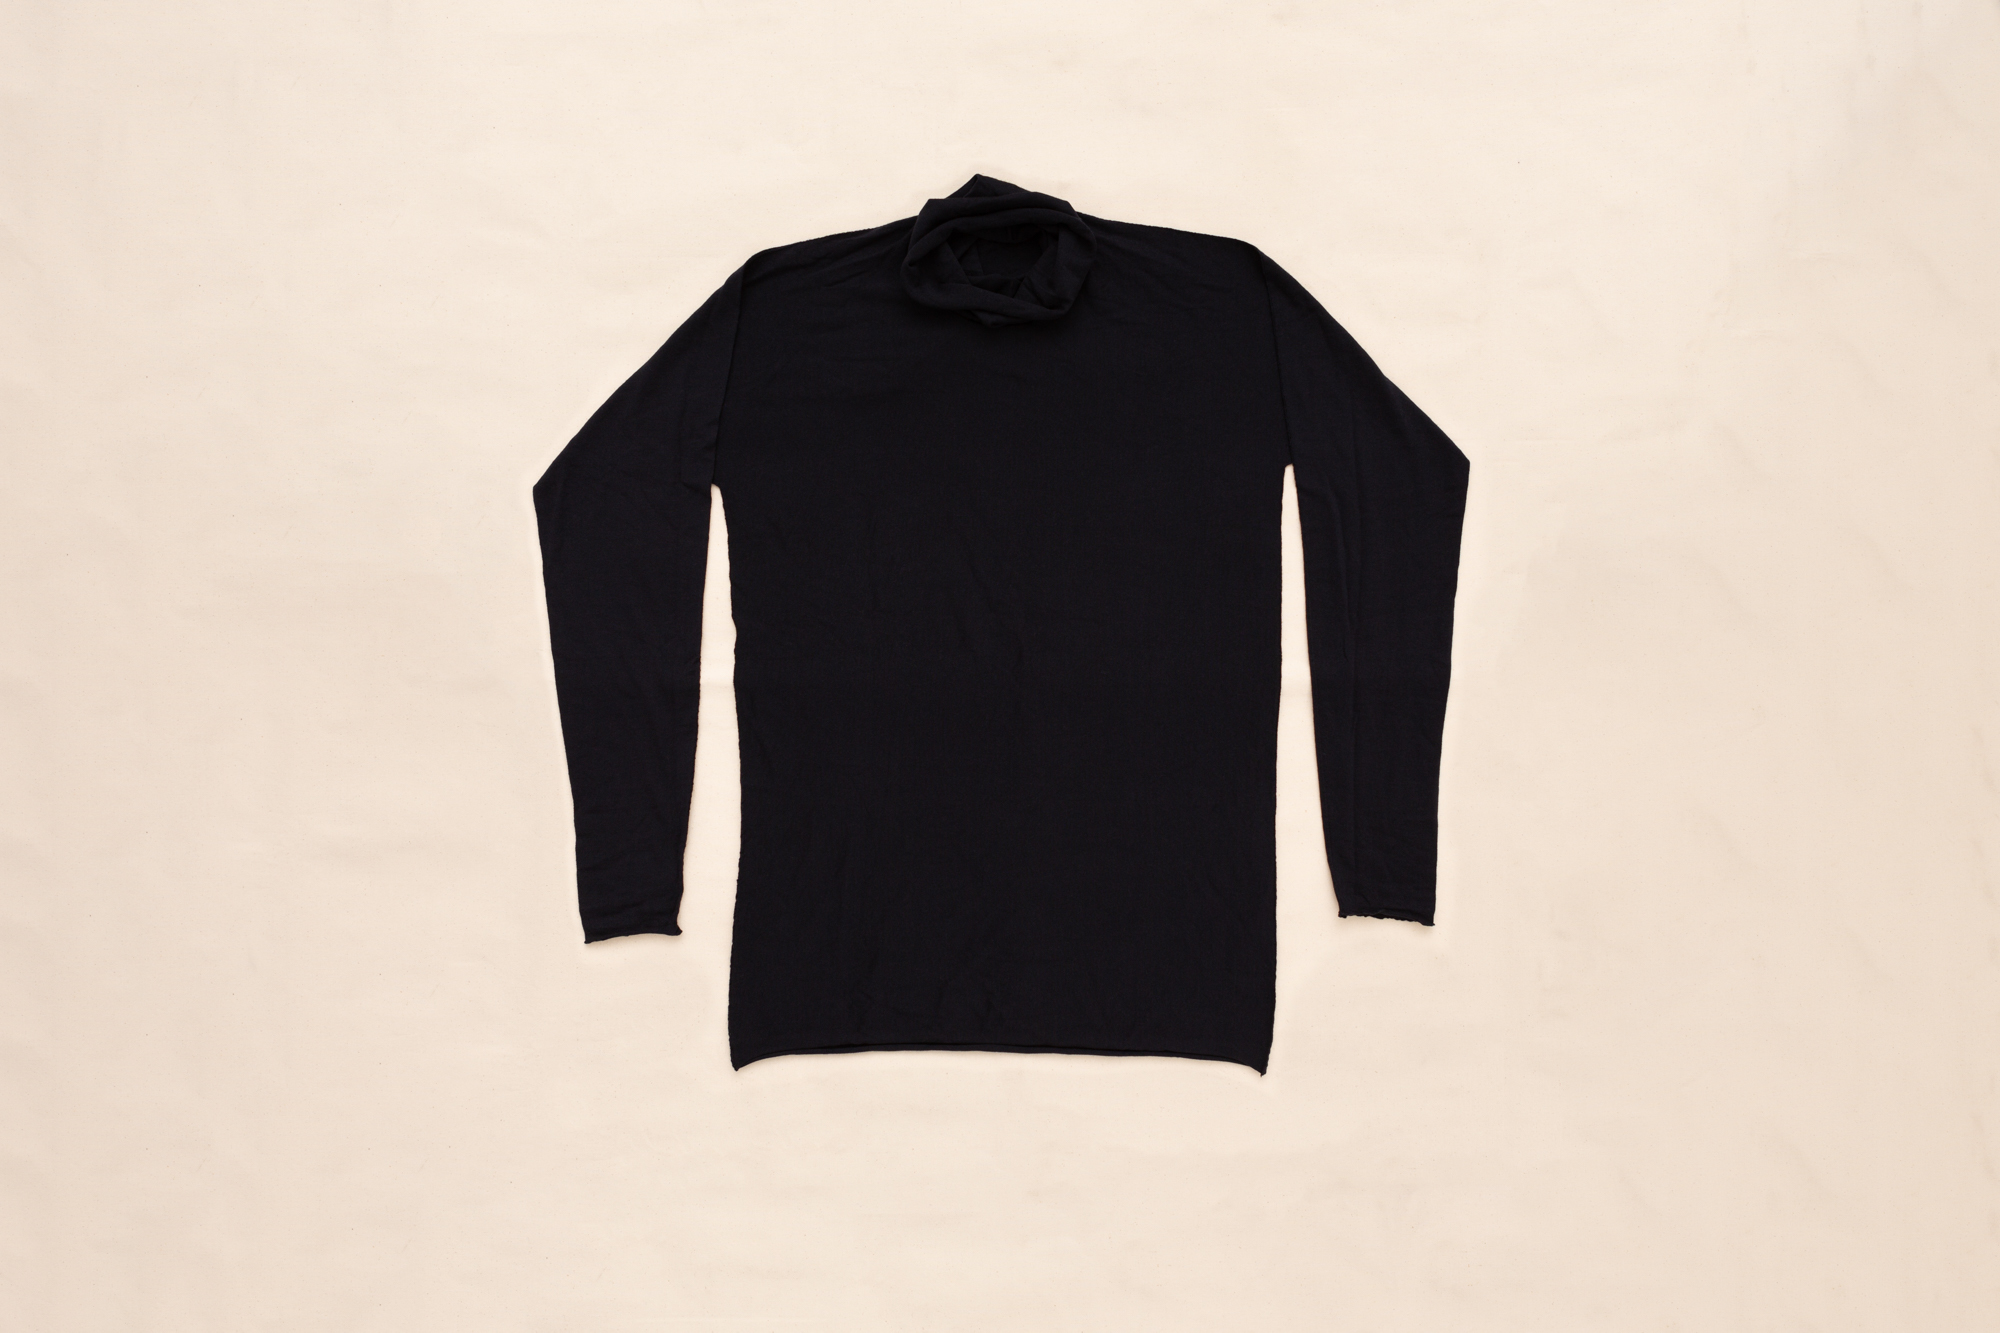 ARCHED CYLINDRIC NECK THERMAL SWEATER BY LUCA LAURINI